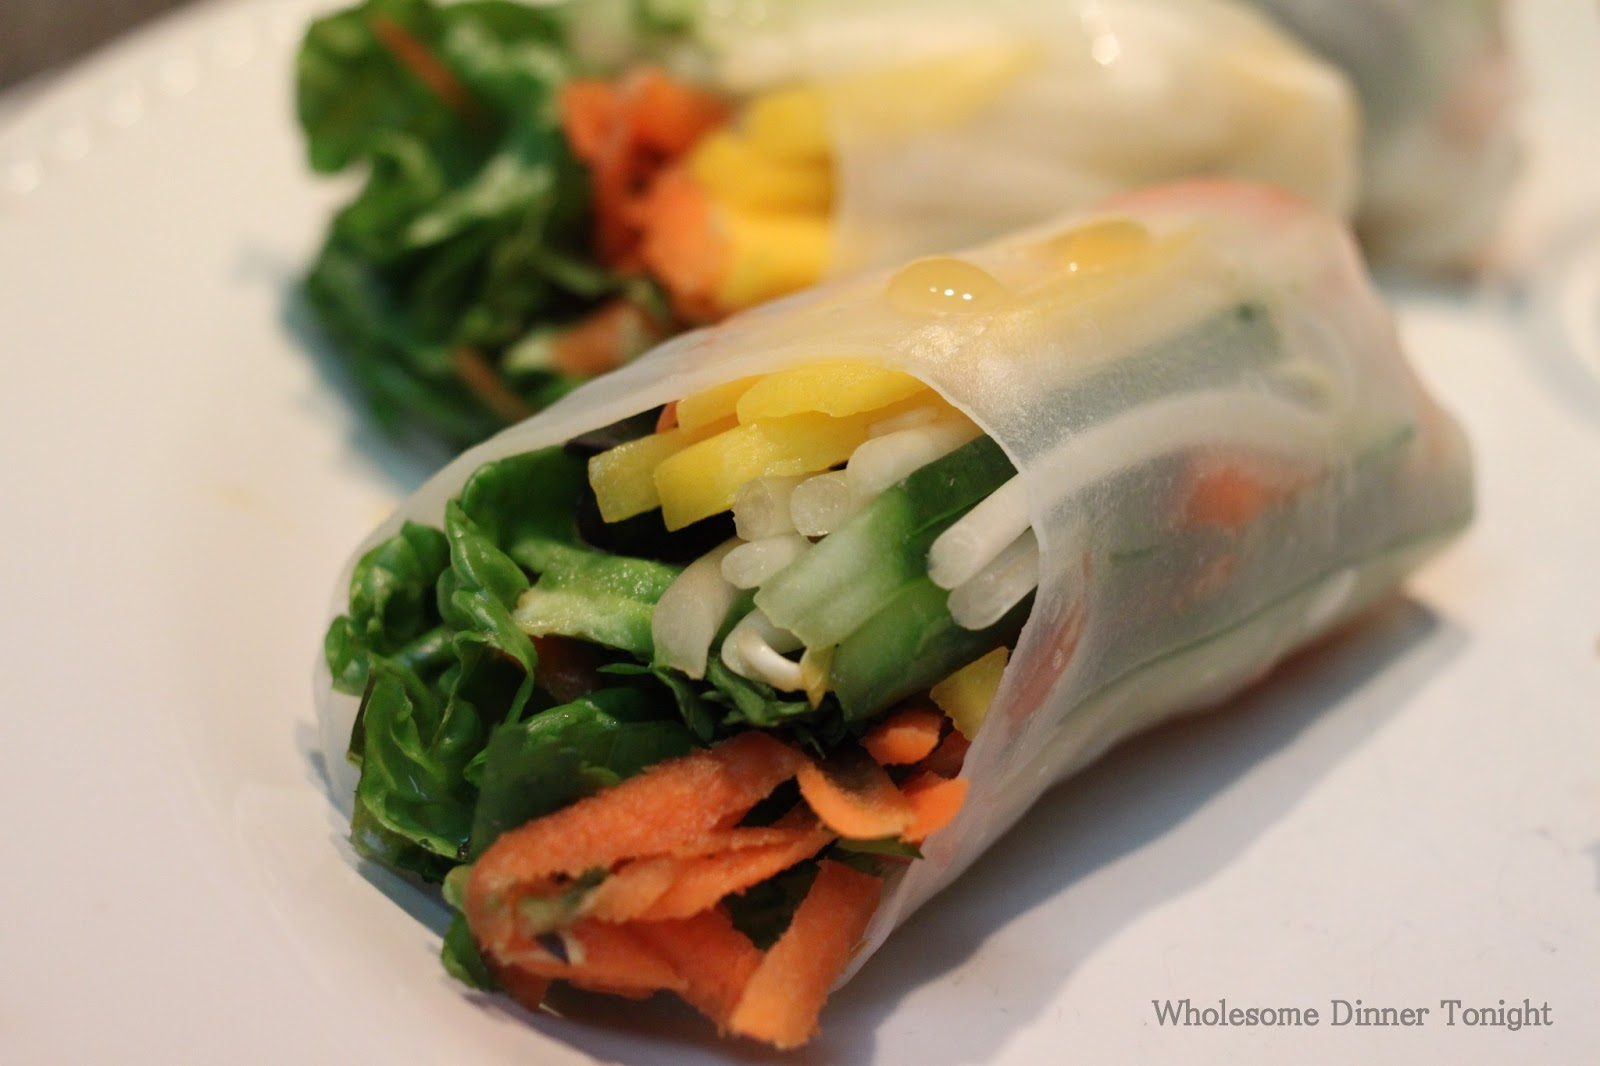 Wholesome Dinner Tonight: Vegetable Spring Rolls {Gluten Free}